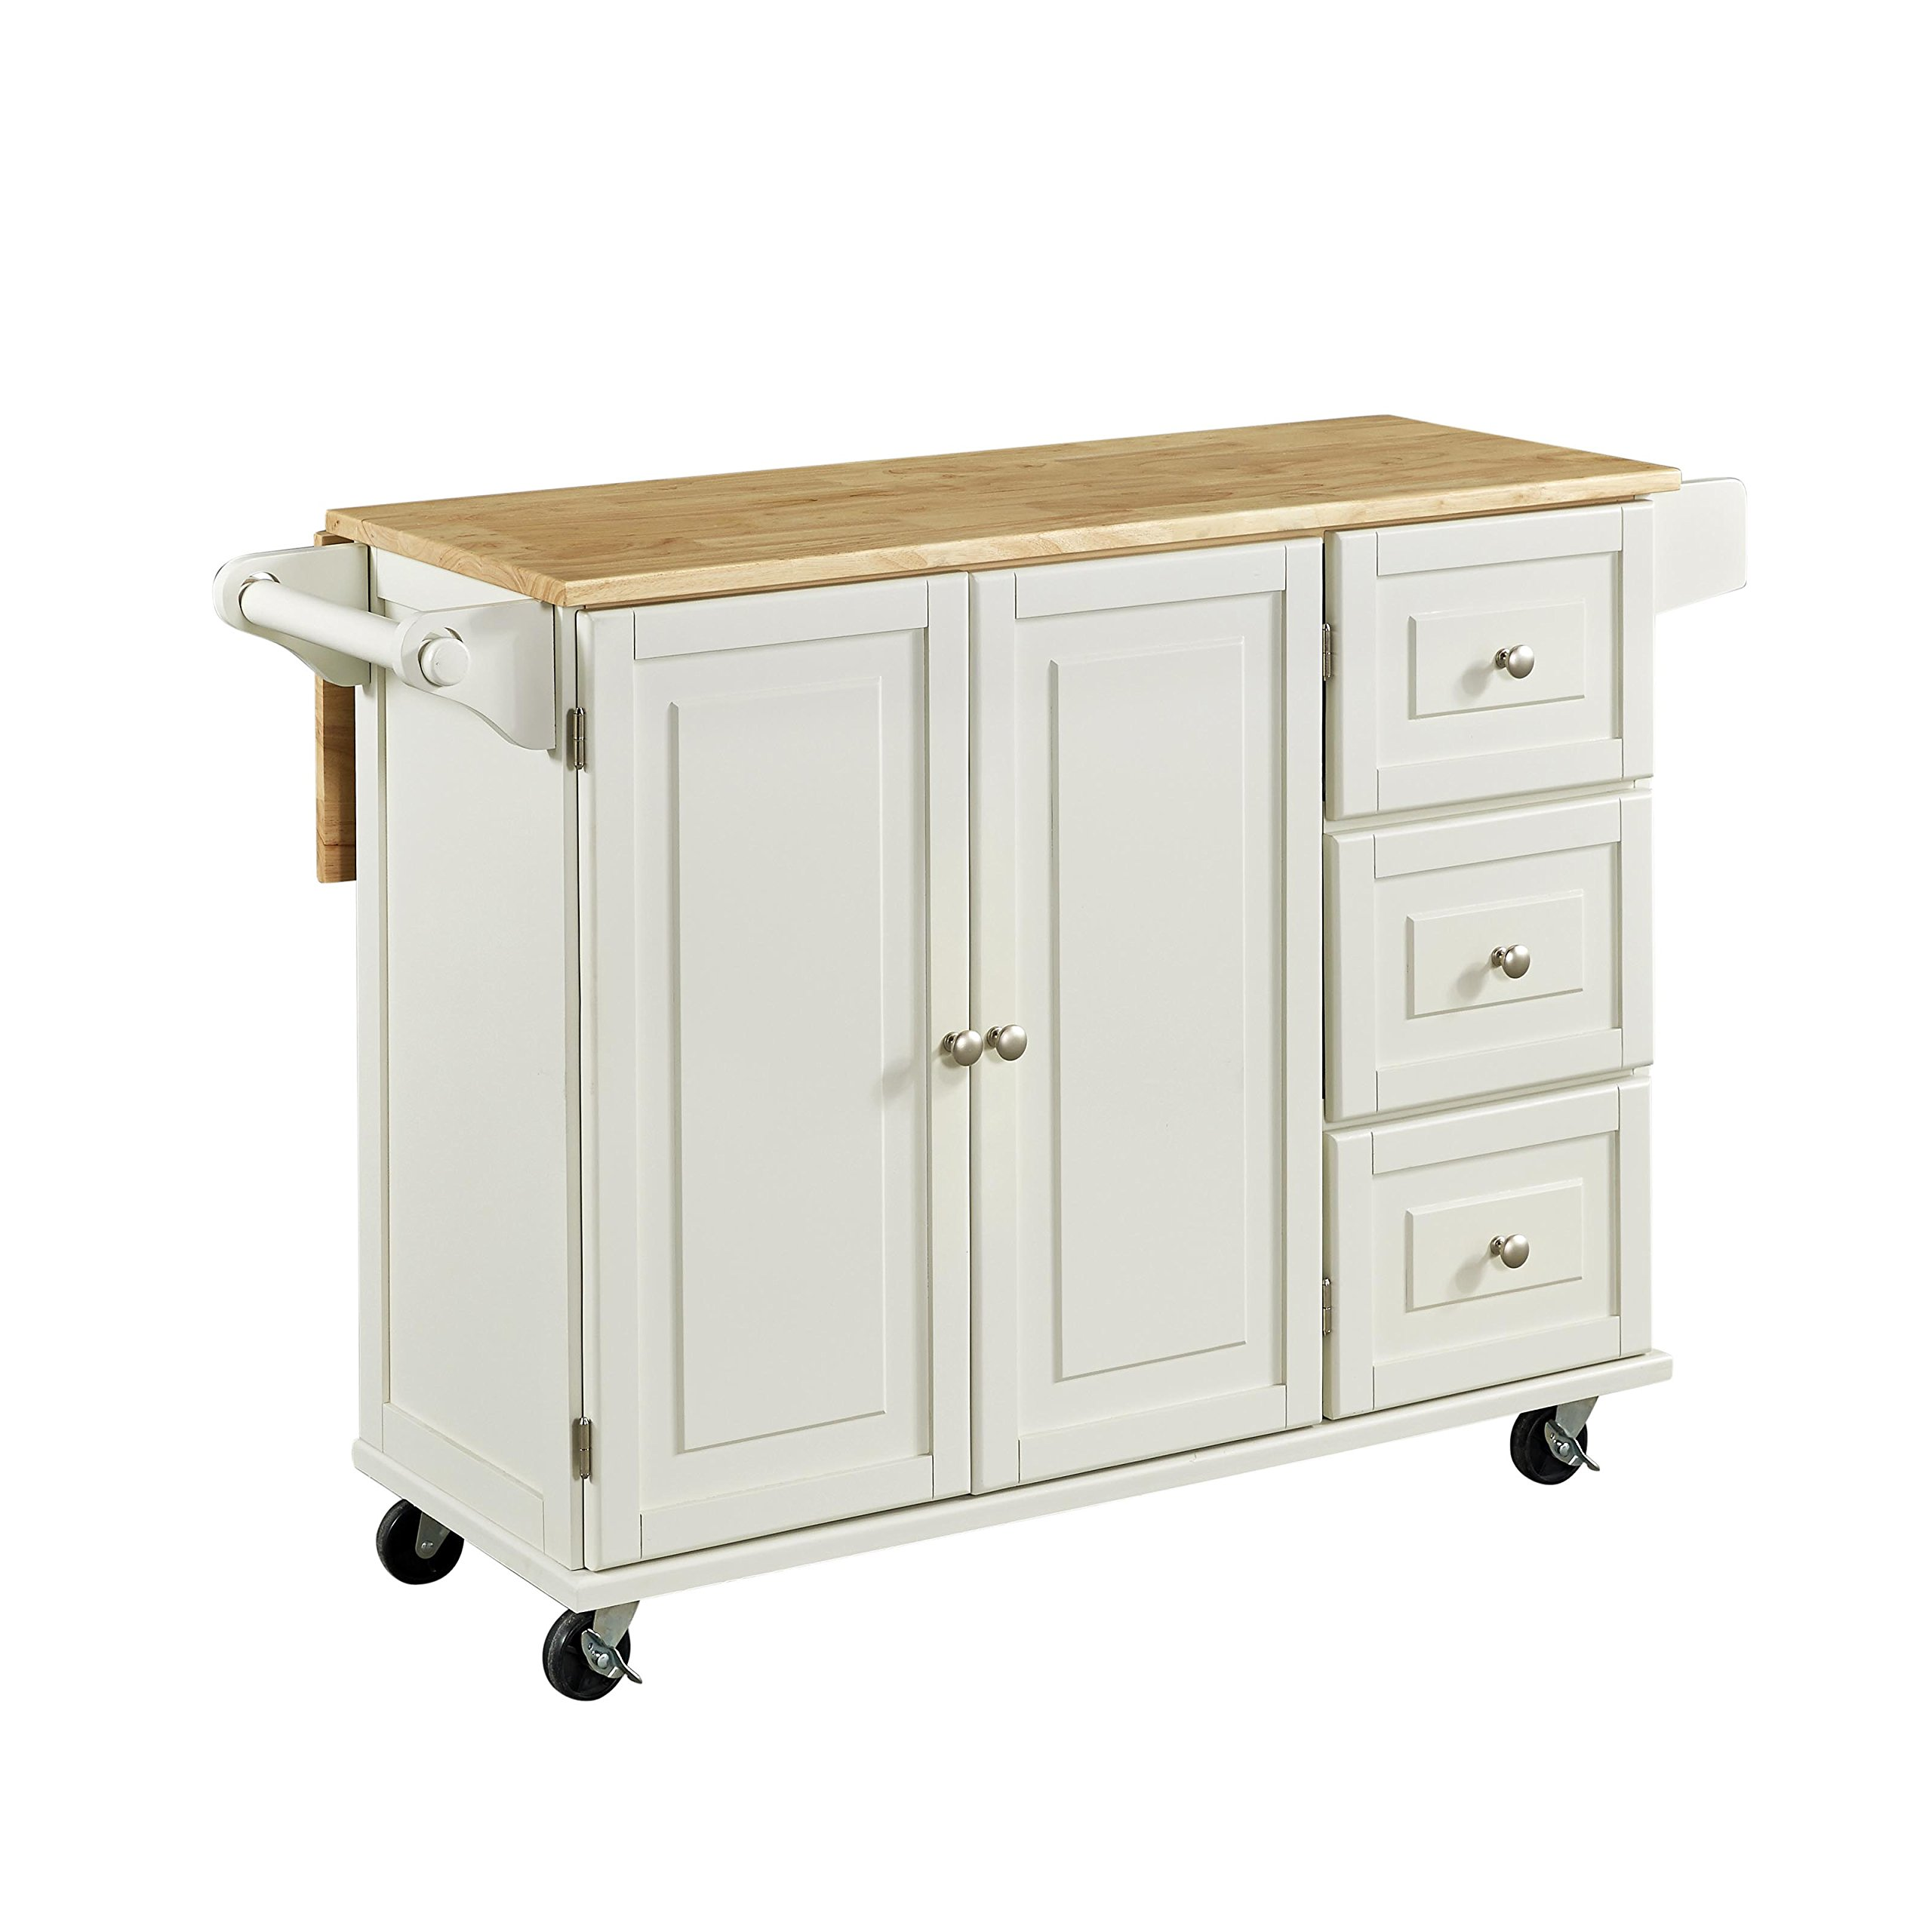 Home Styles 4511-95 Liberty Kitchen Cart with Wood Top, White by Home Styles (Image #8)